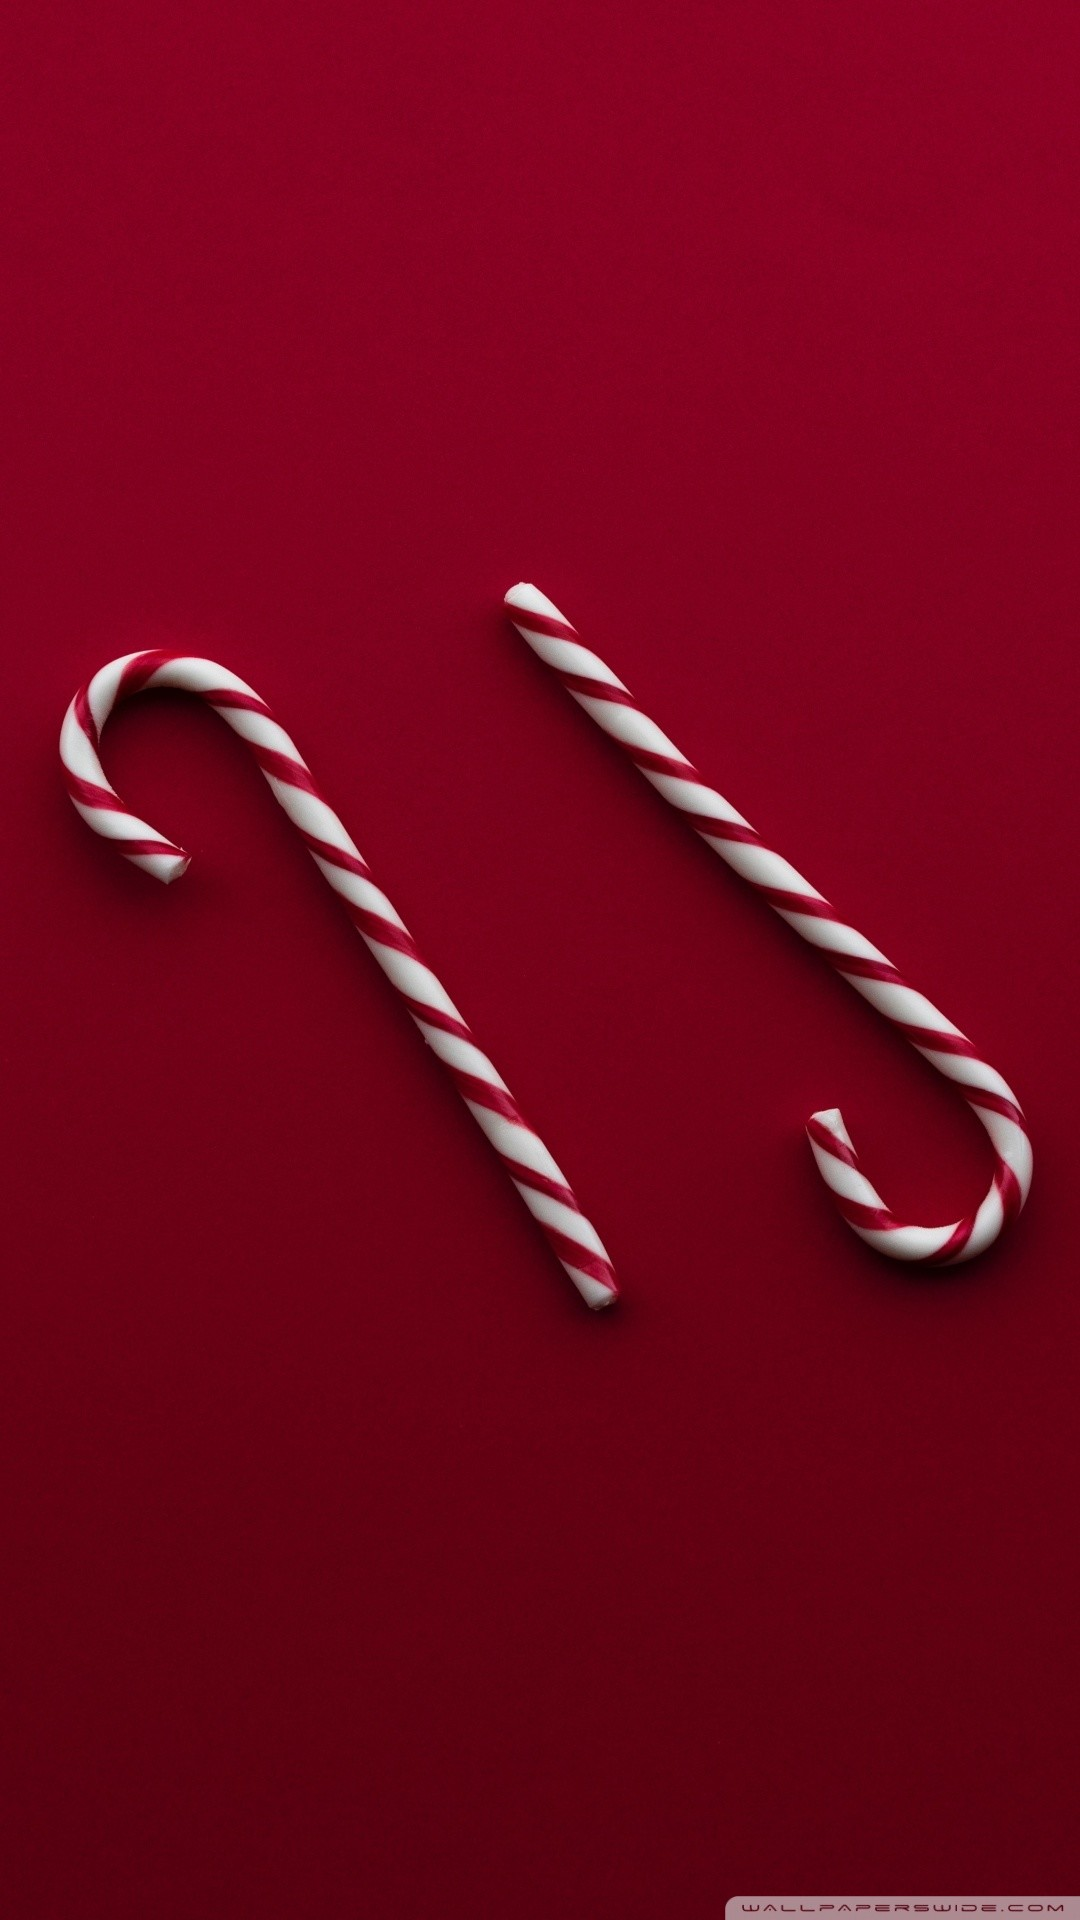 Free Christmas Candy Canes Red Background phone wallpaper by treymohme